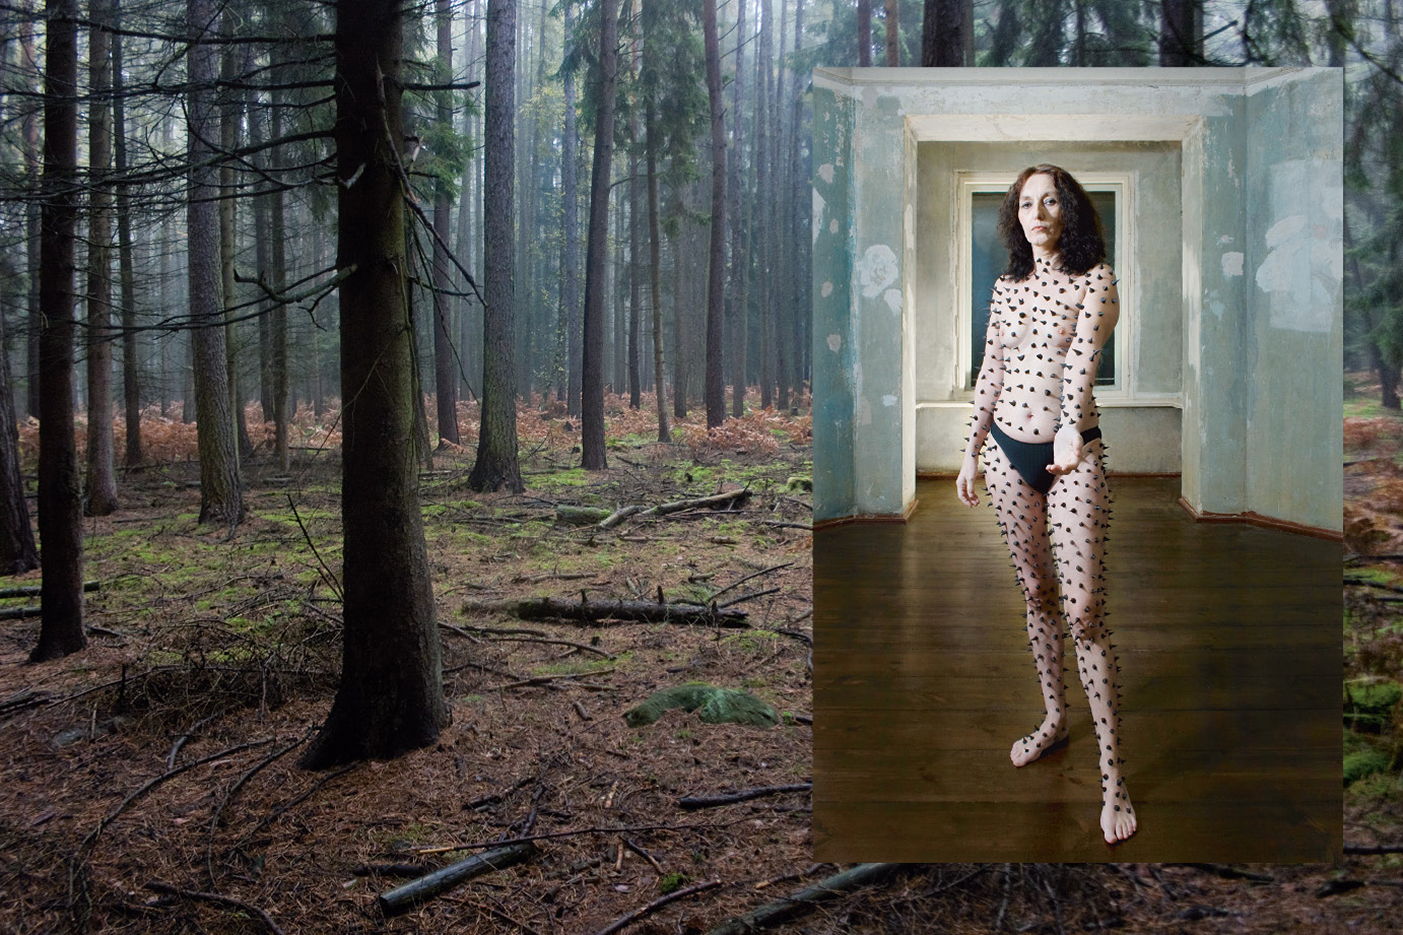 forest, woman, naked, thorns, need, longing, desire, hunt, photobook